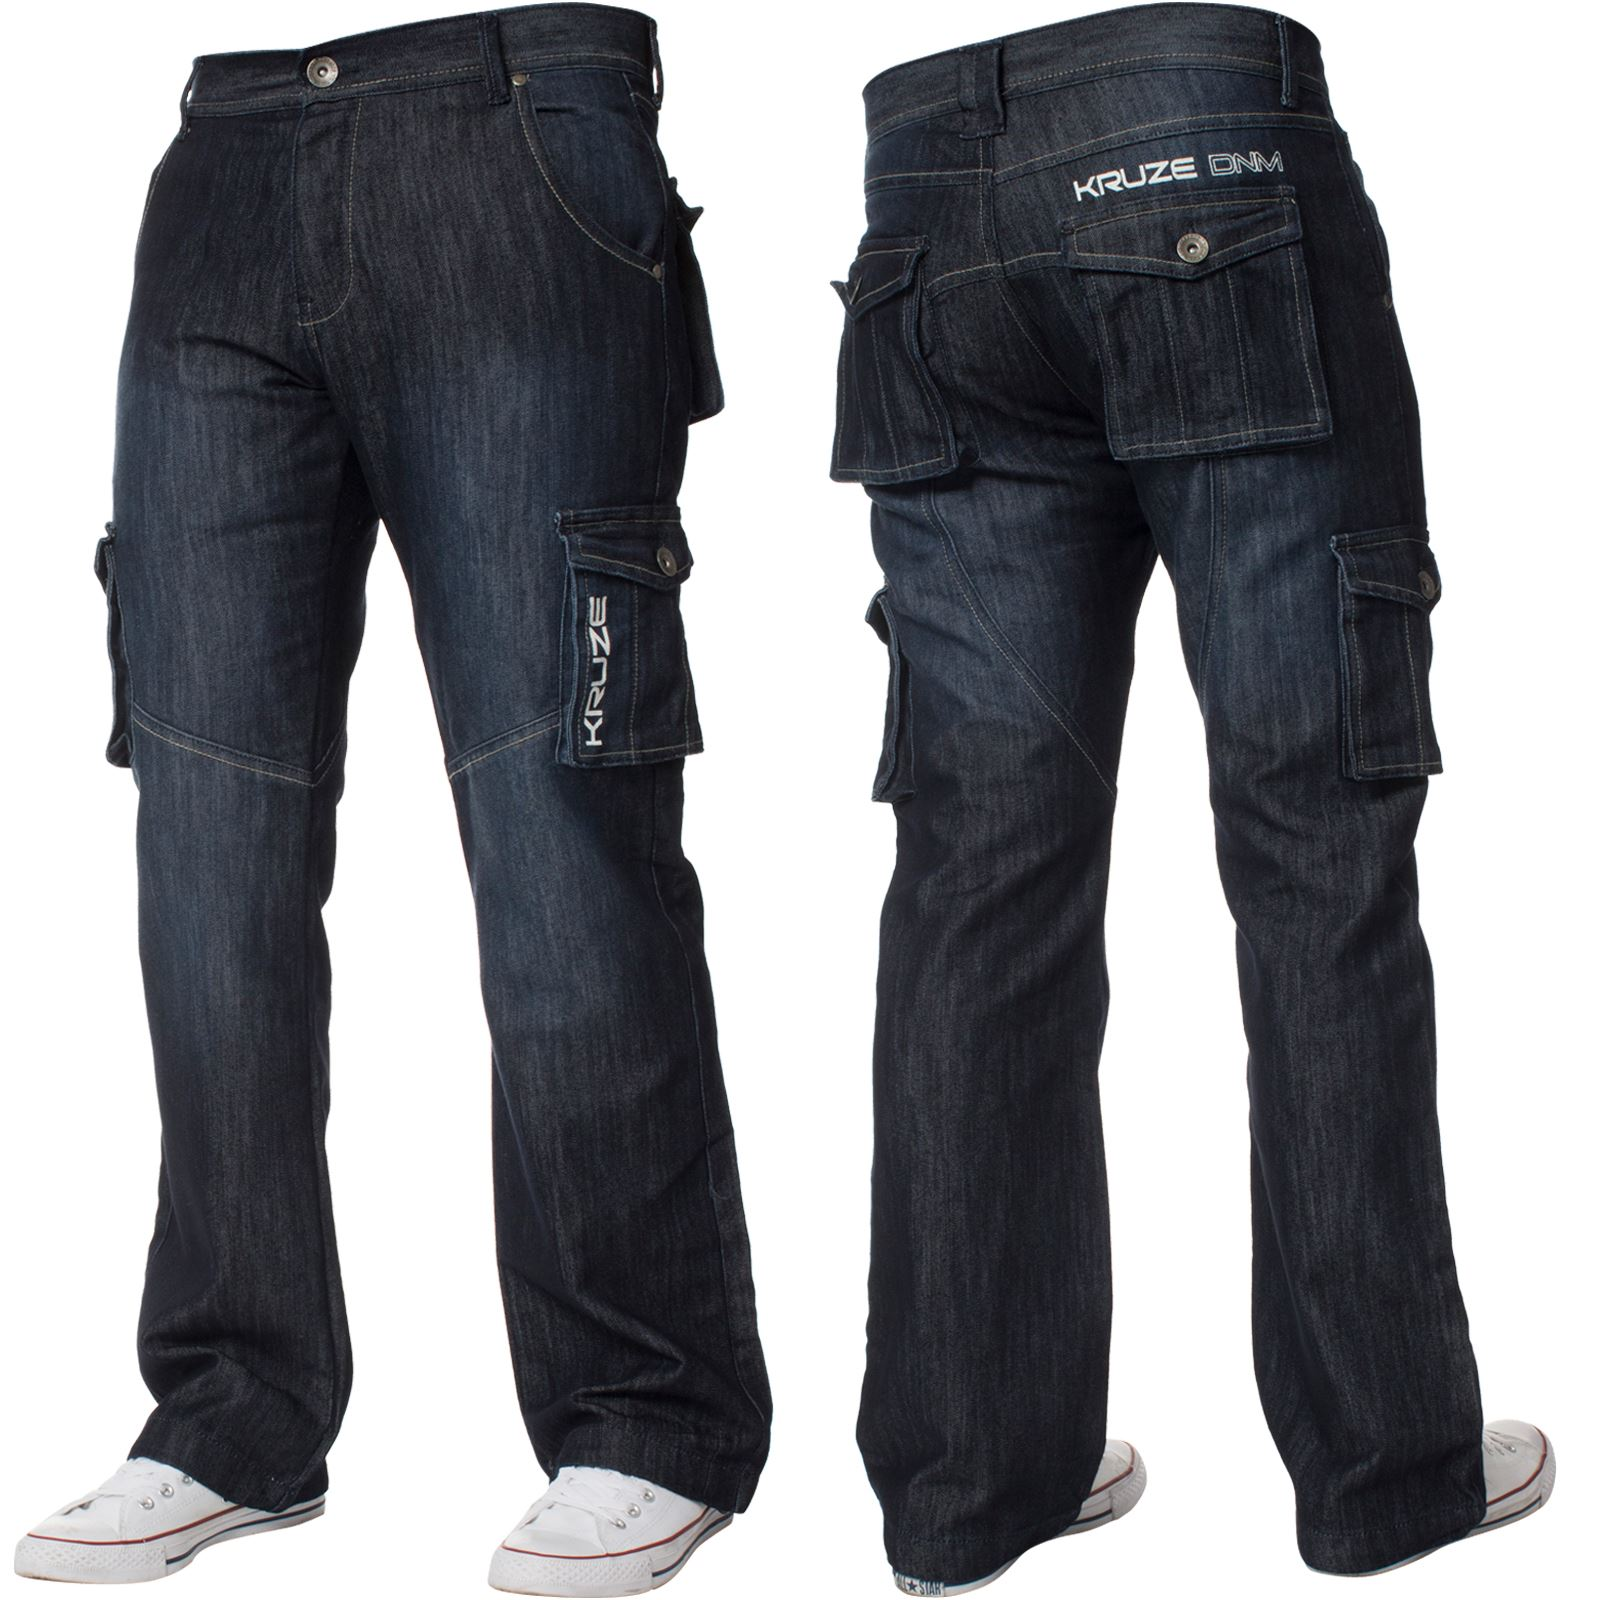 Mens-Cargo-Combat-Trousers-Jeans-Heavy-Duty-Work-Casual-Pants-Big-Tall-All-Sizes thumbnail 3